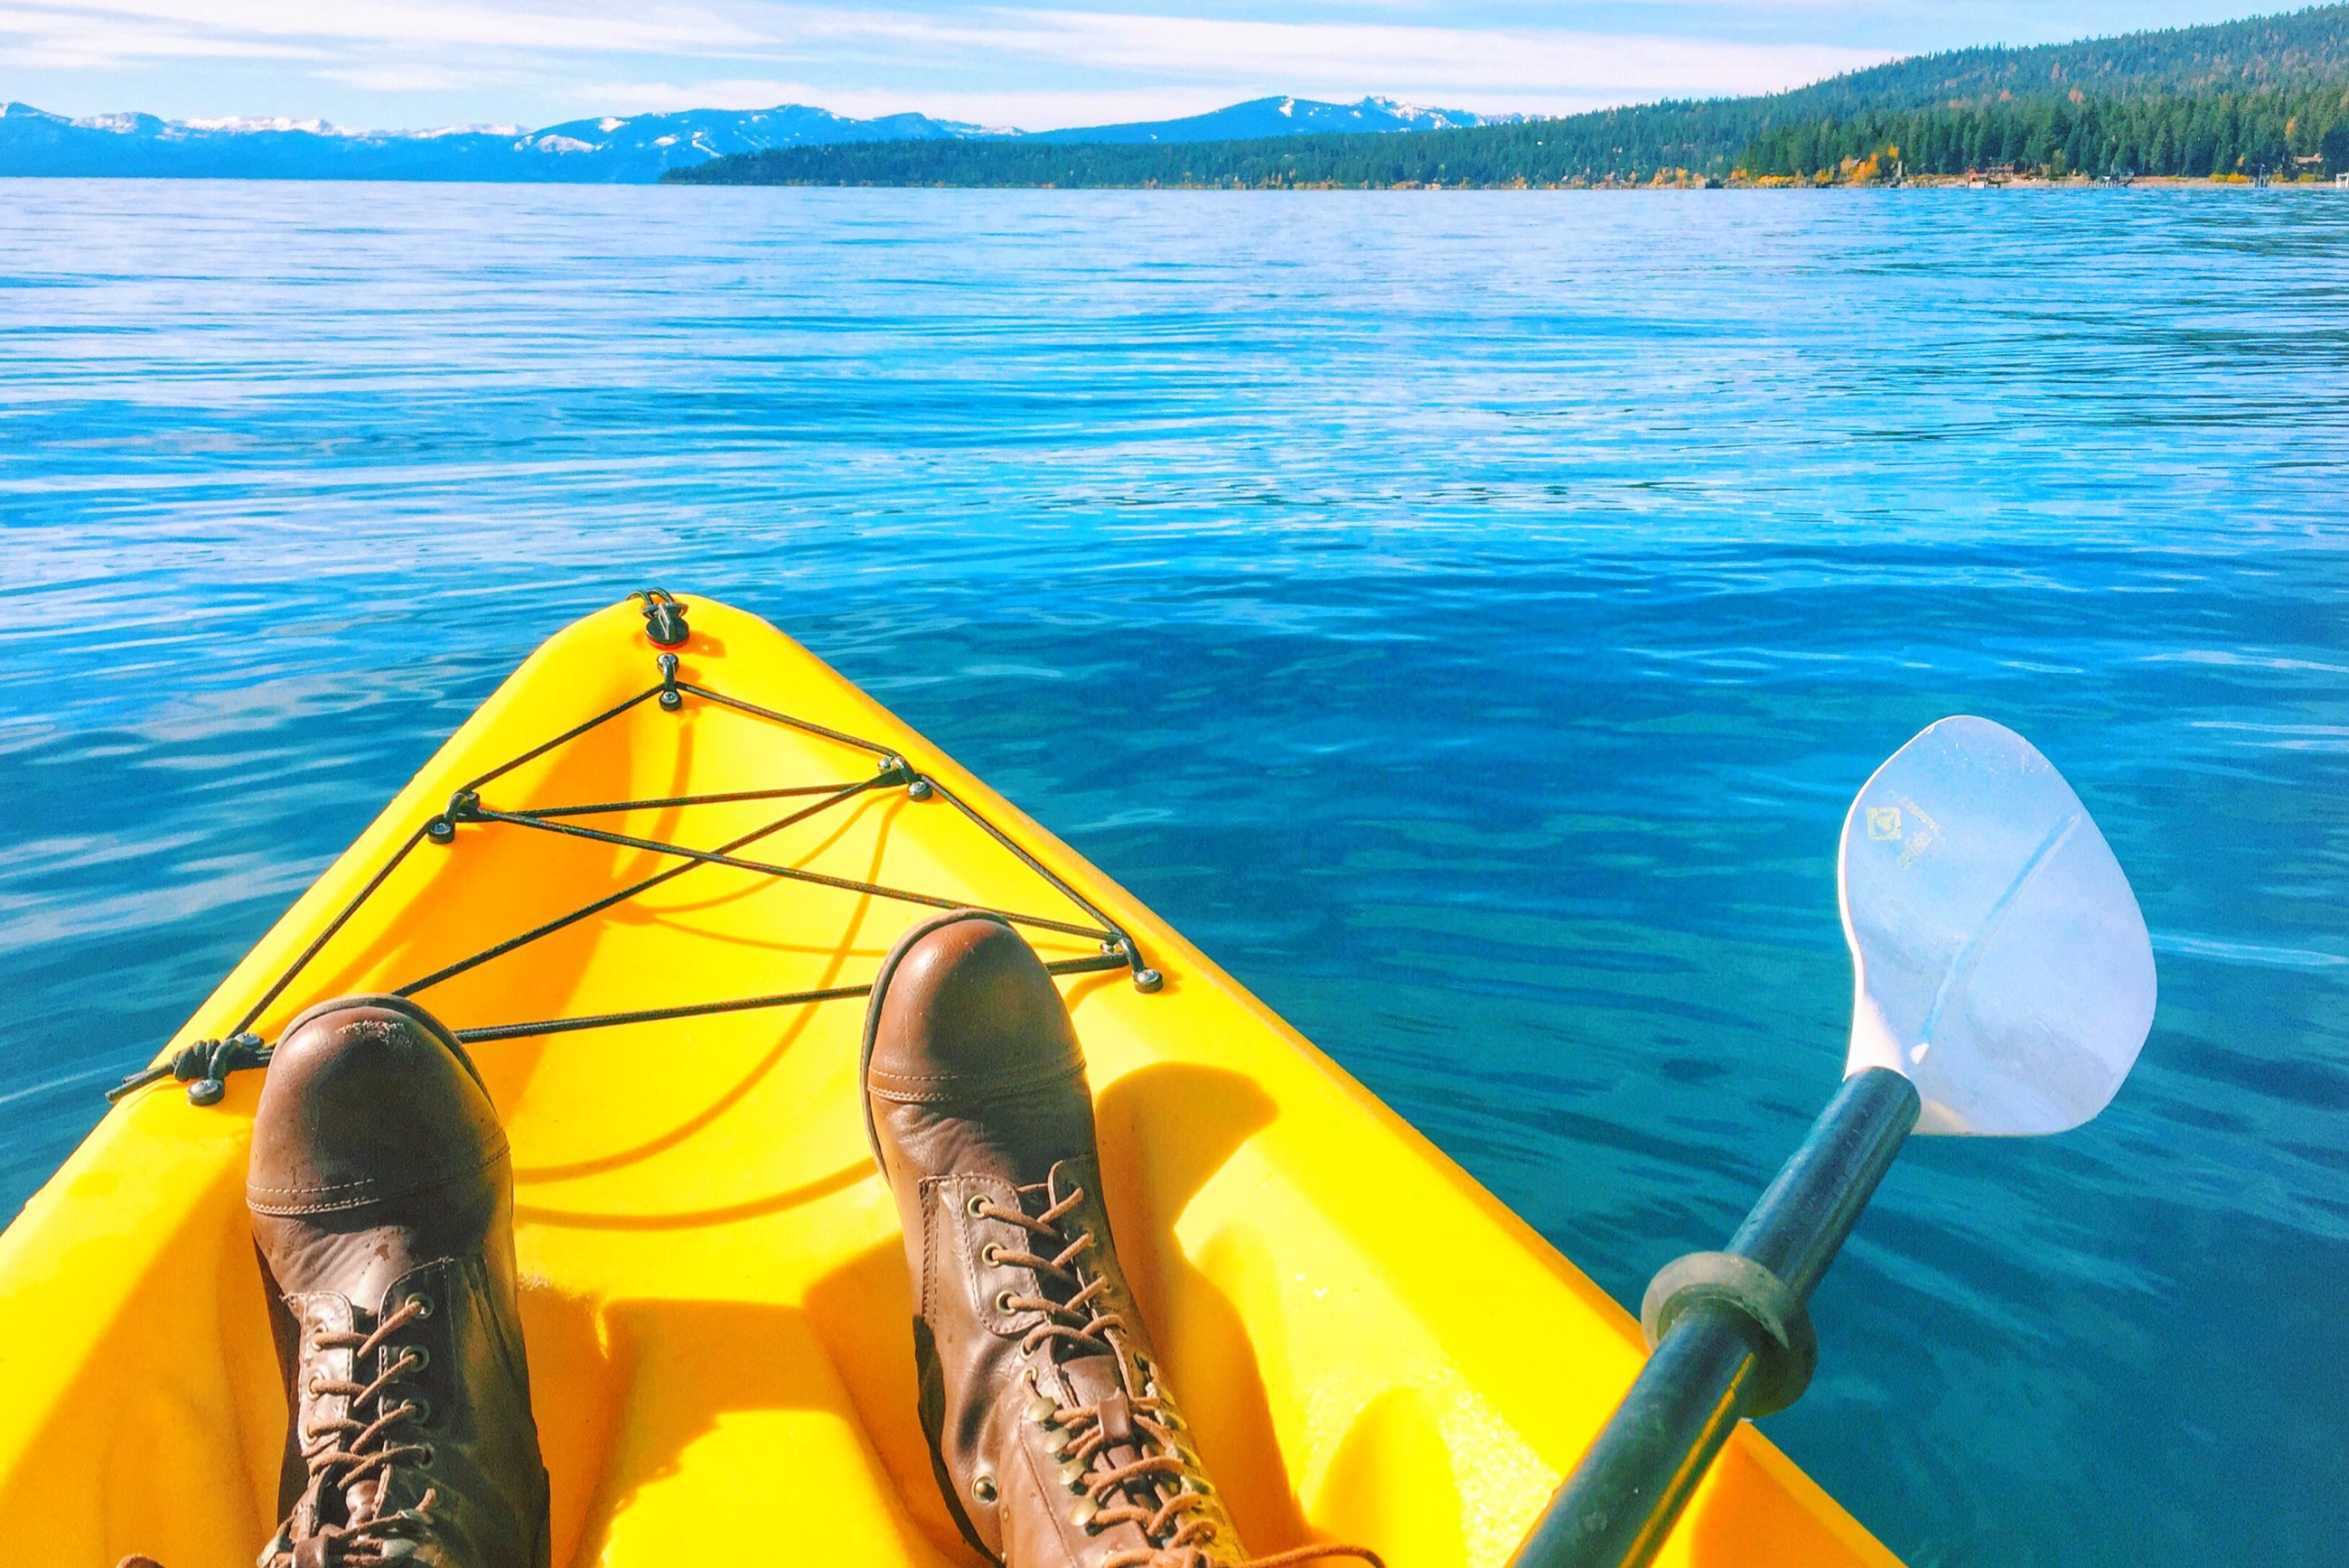 tahoe adventure company kayak tour